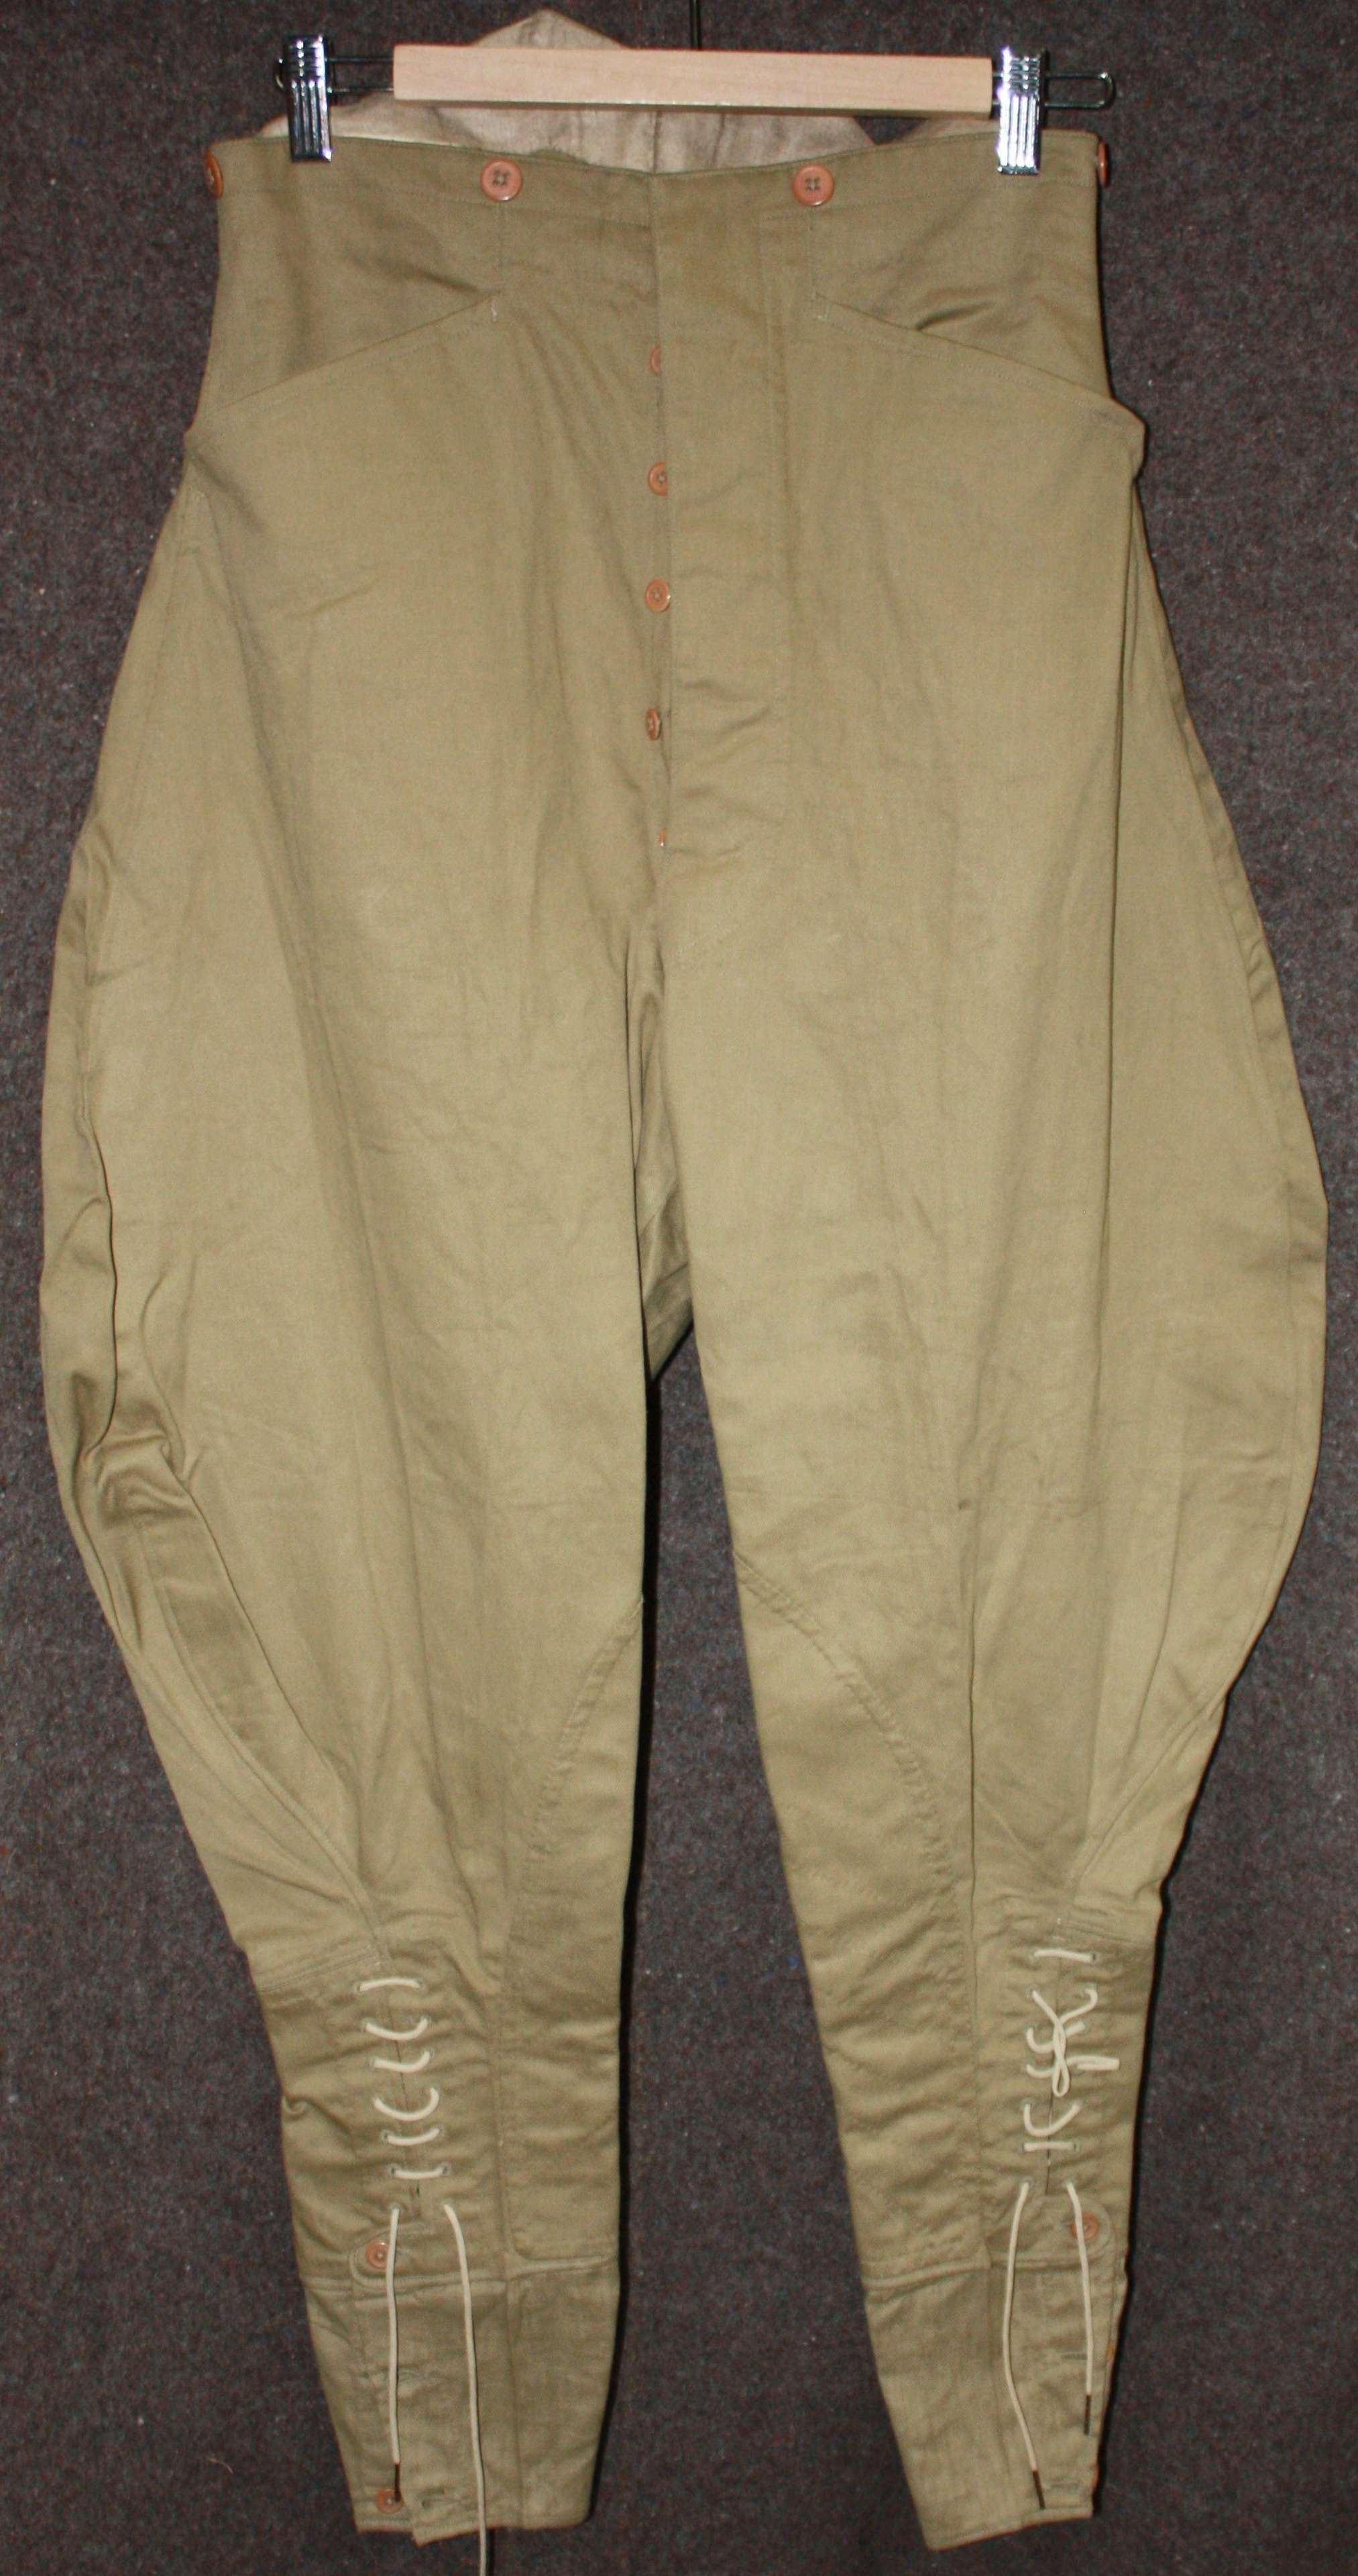 A 1939 DATED PAIR OF INDIAN MADE JODHPURS SMALL SIZE SEE PICS